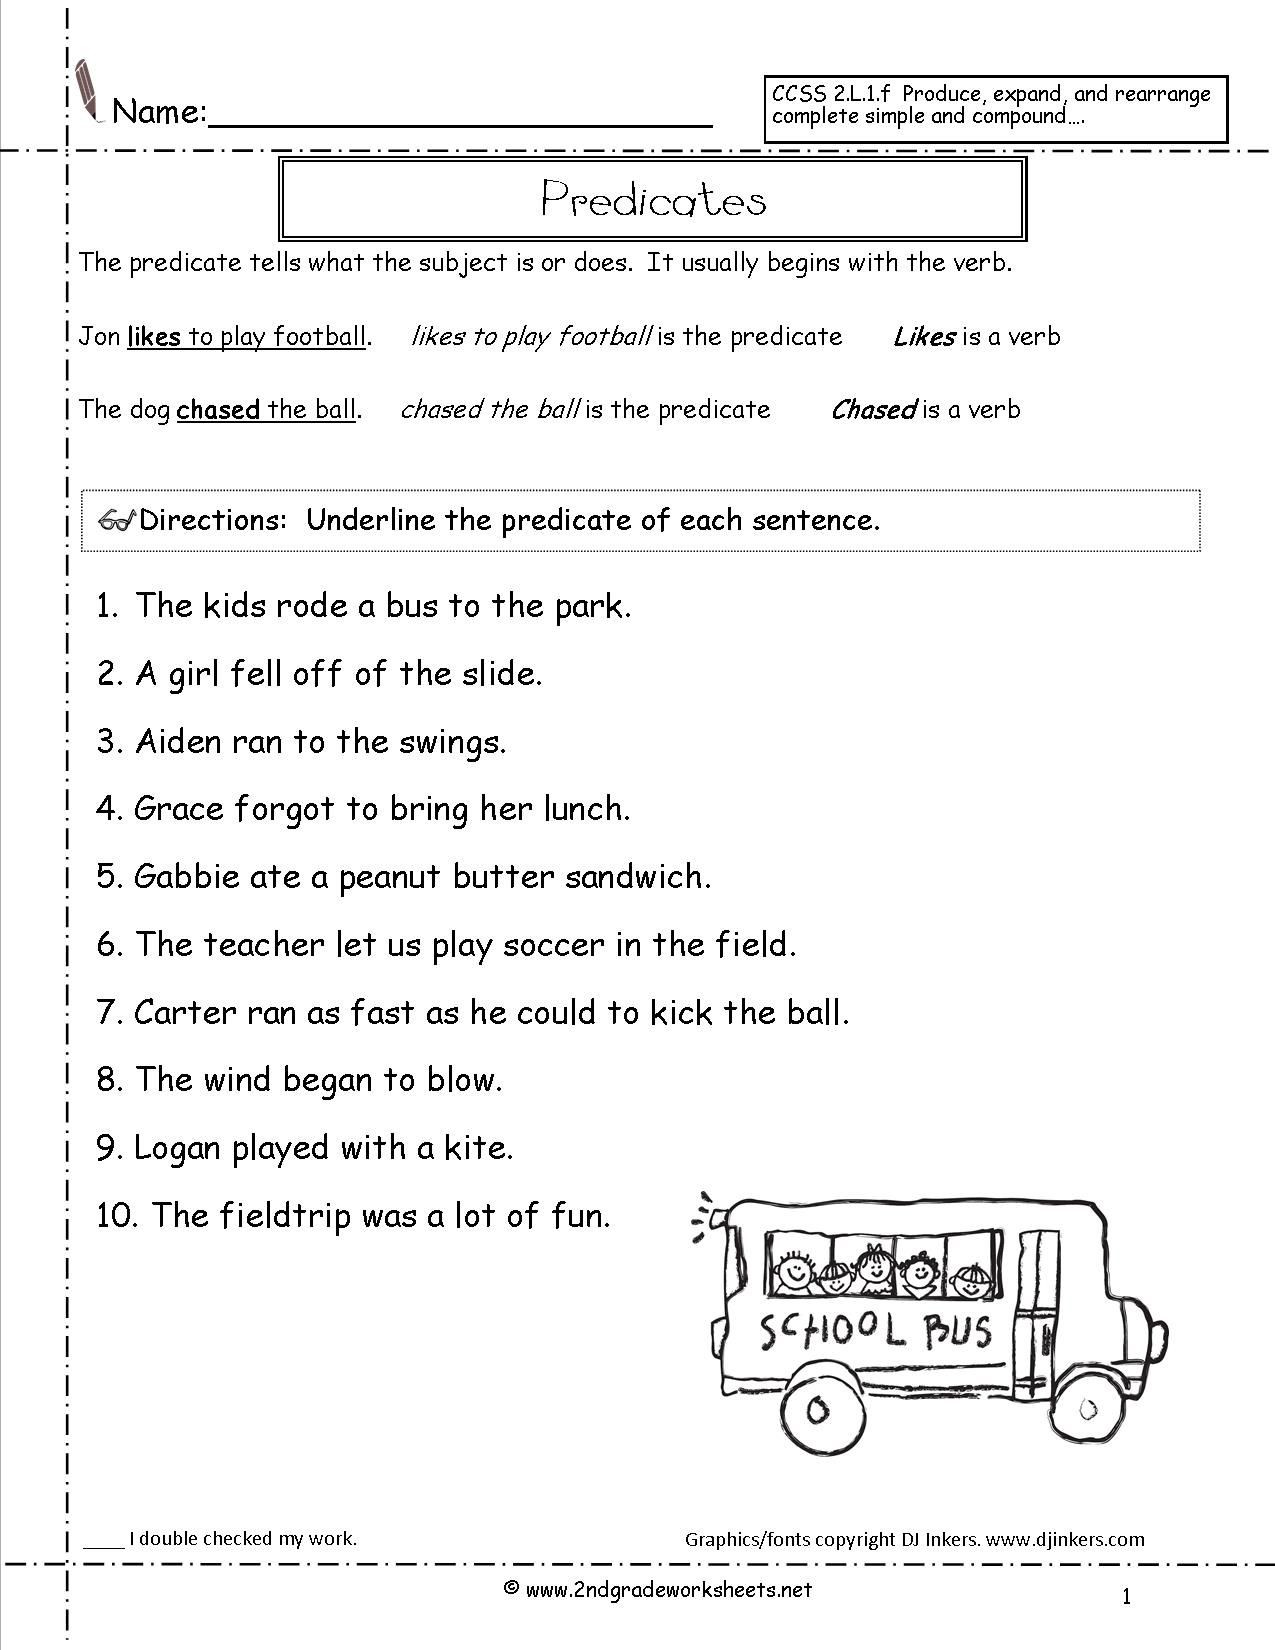 Complete Sentences Worksheets 3rd Grade Subject and Predicate Sentences Worksheets for 3rd